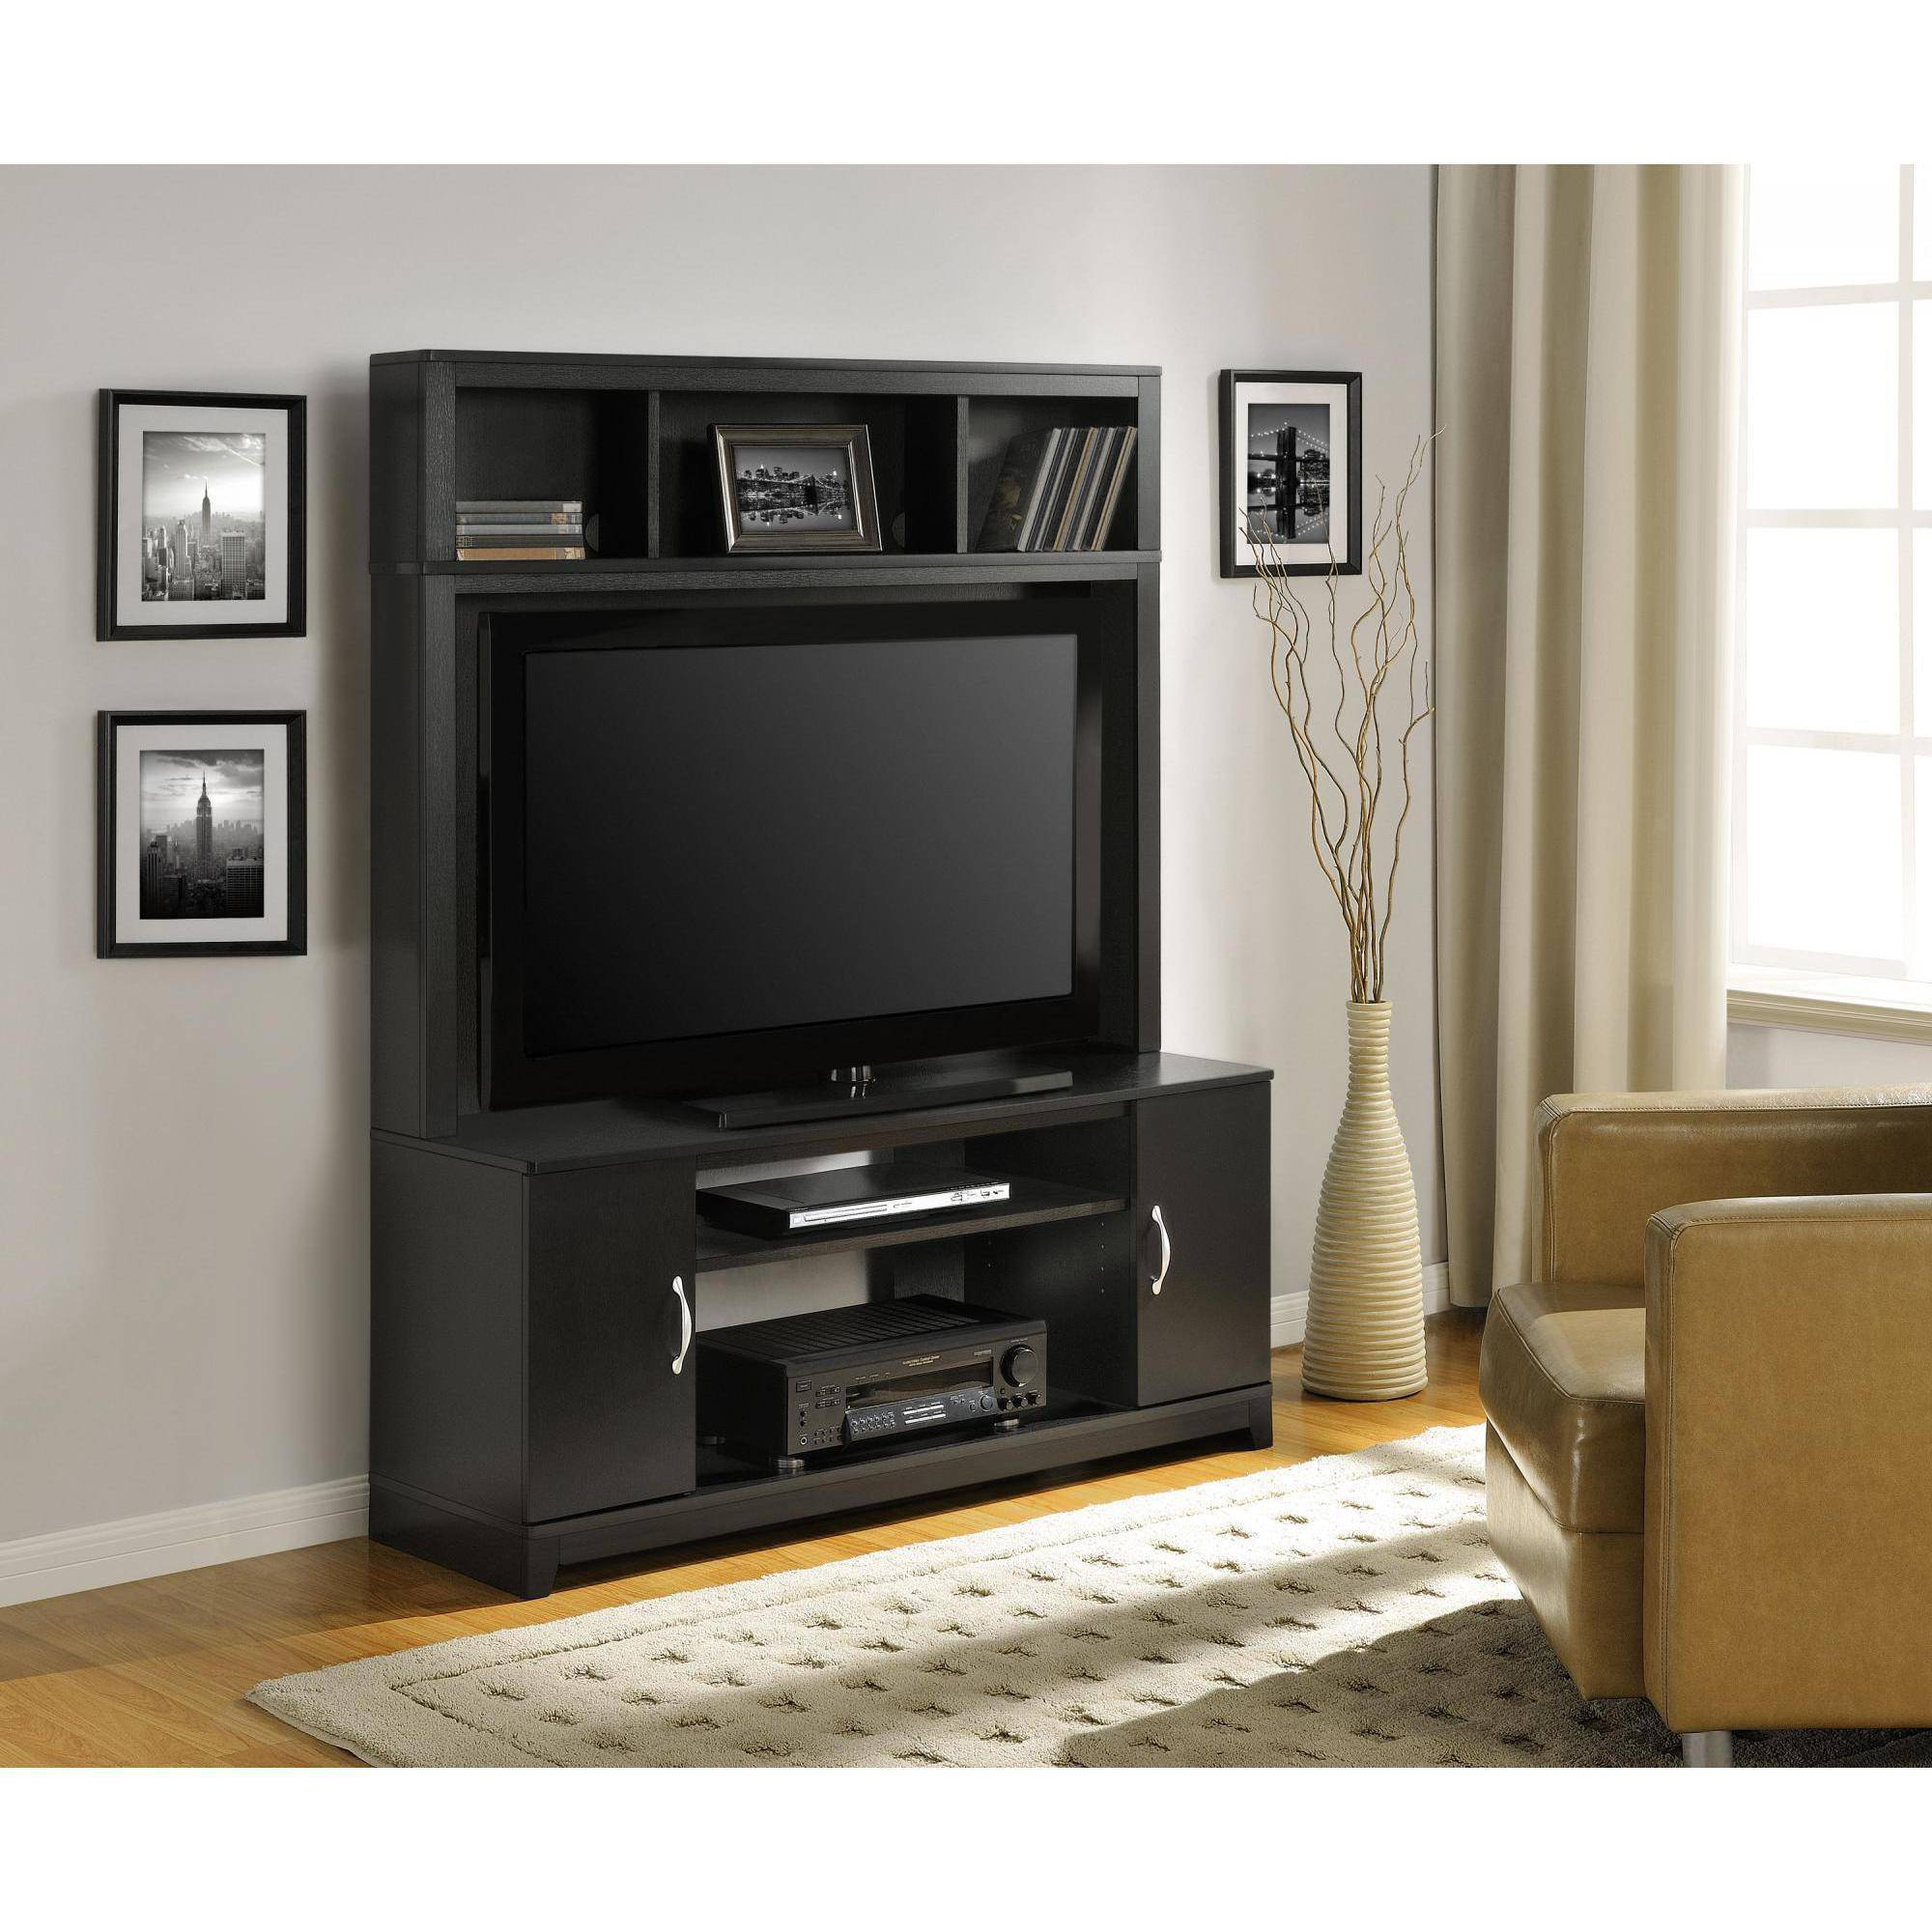 "Altra Woodland Black Home Entertainment Center for TVs up to 42"" by Altra"